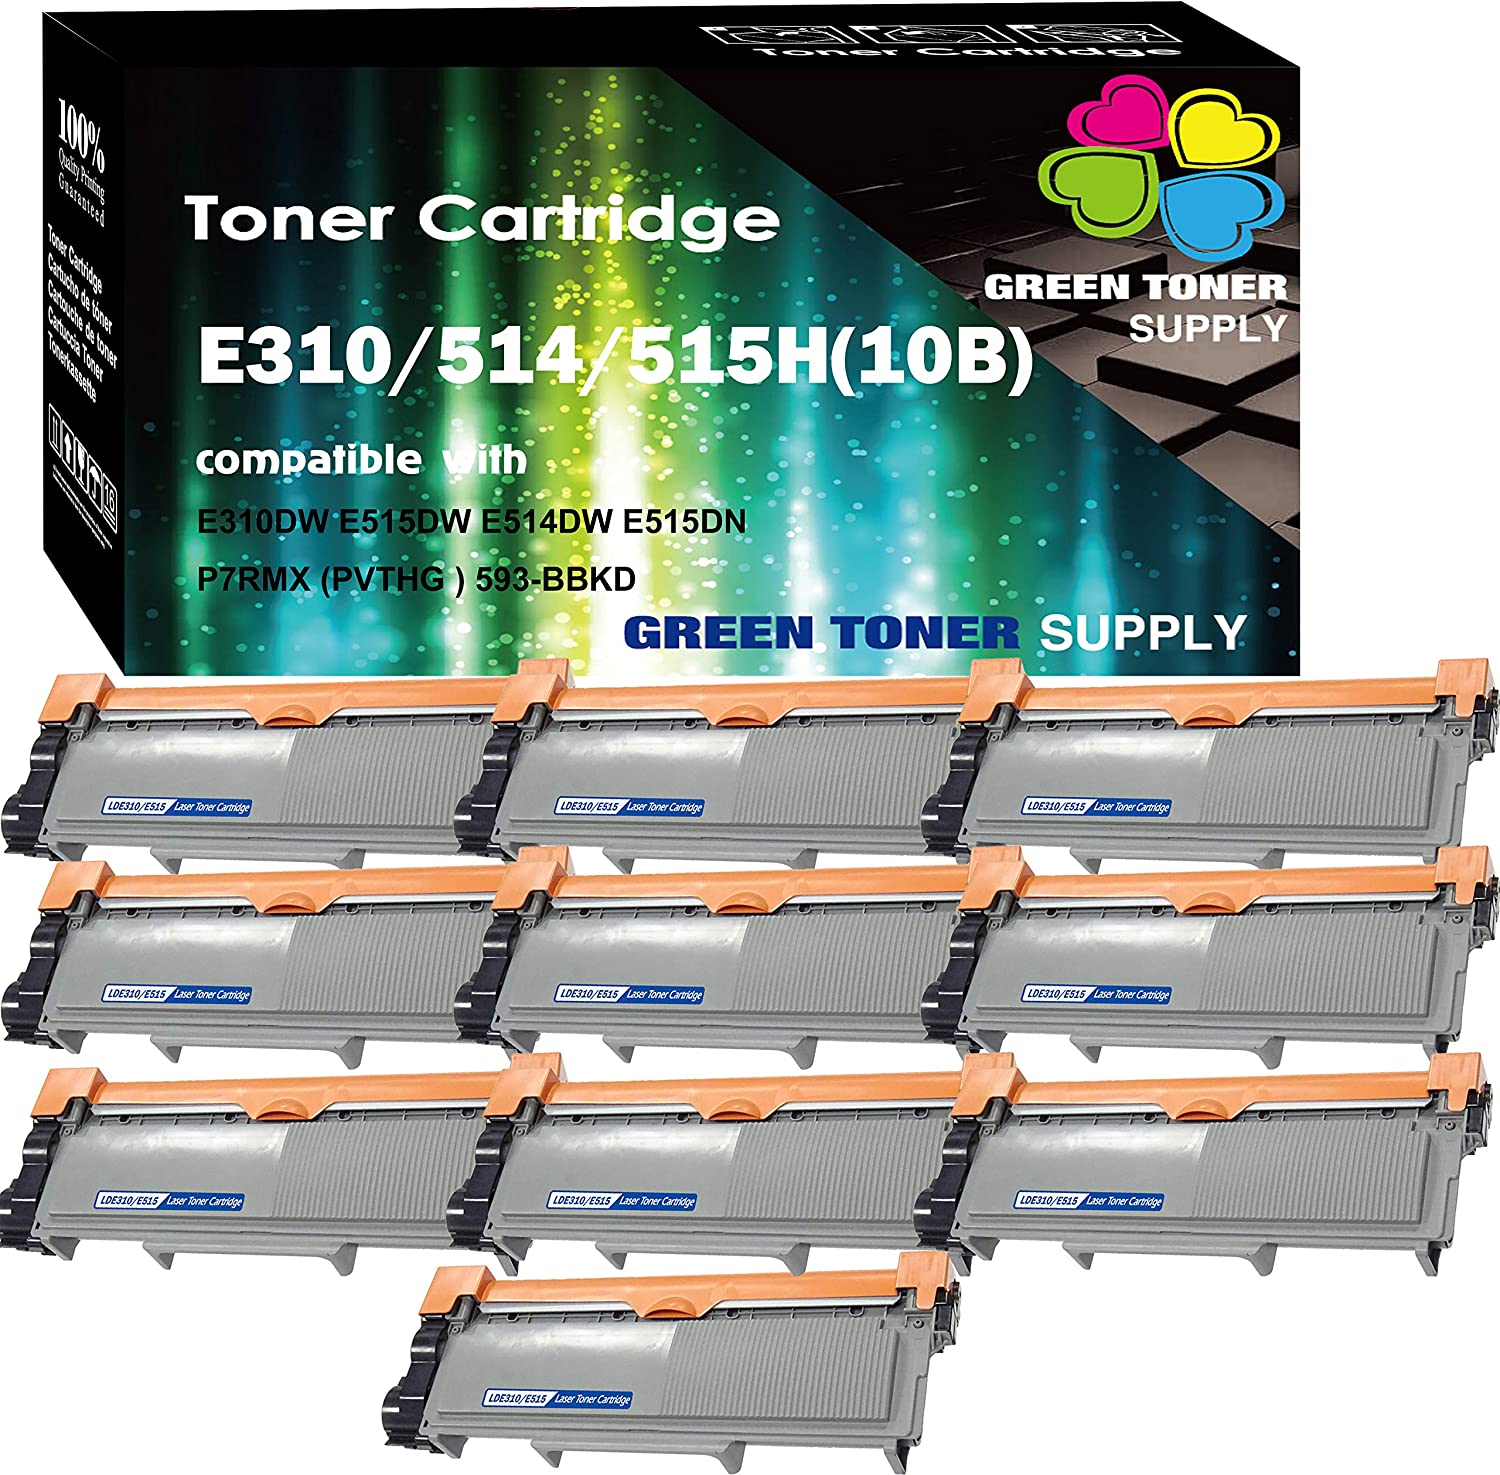 (10 x Black) Compatible E310 E515 593-BBKD Toner Cartridge for use in (PVTHG) Dell E310dw E514dw E515dw E515dn Printer